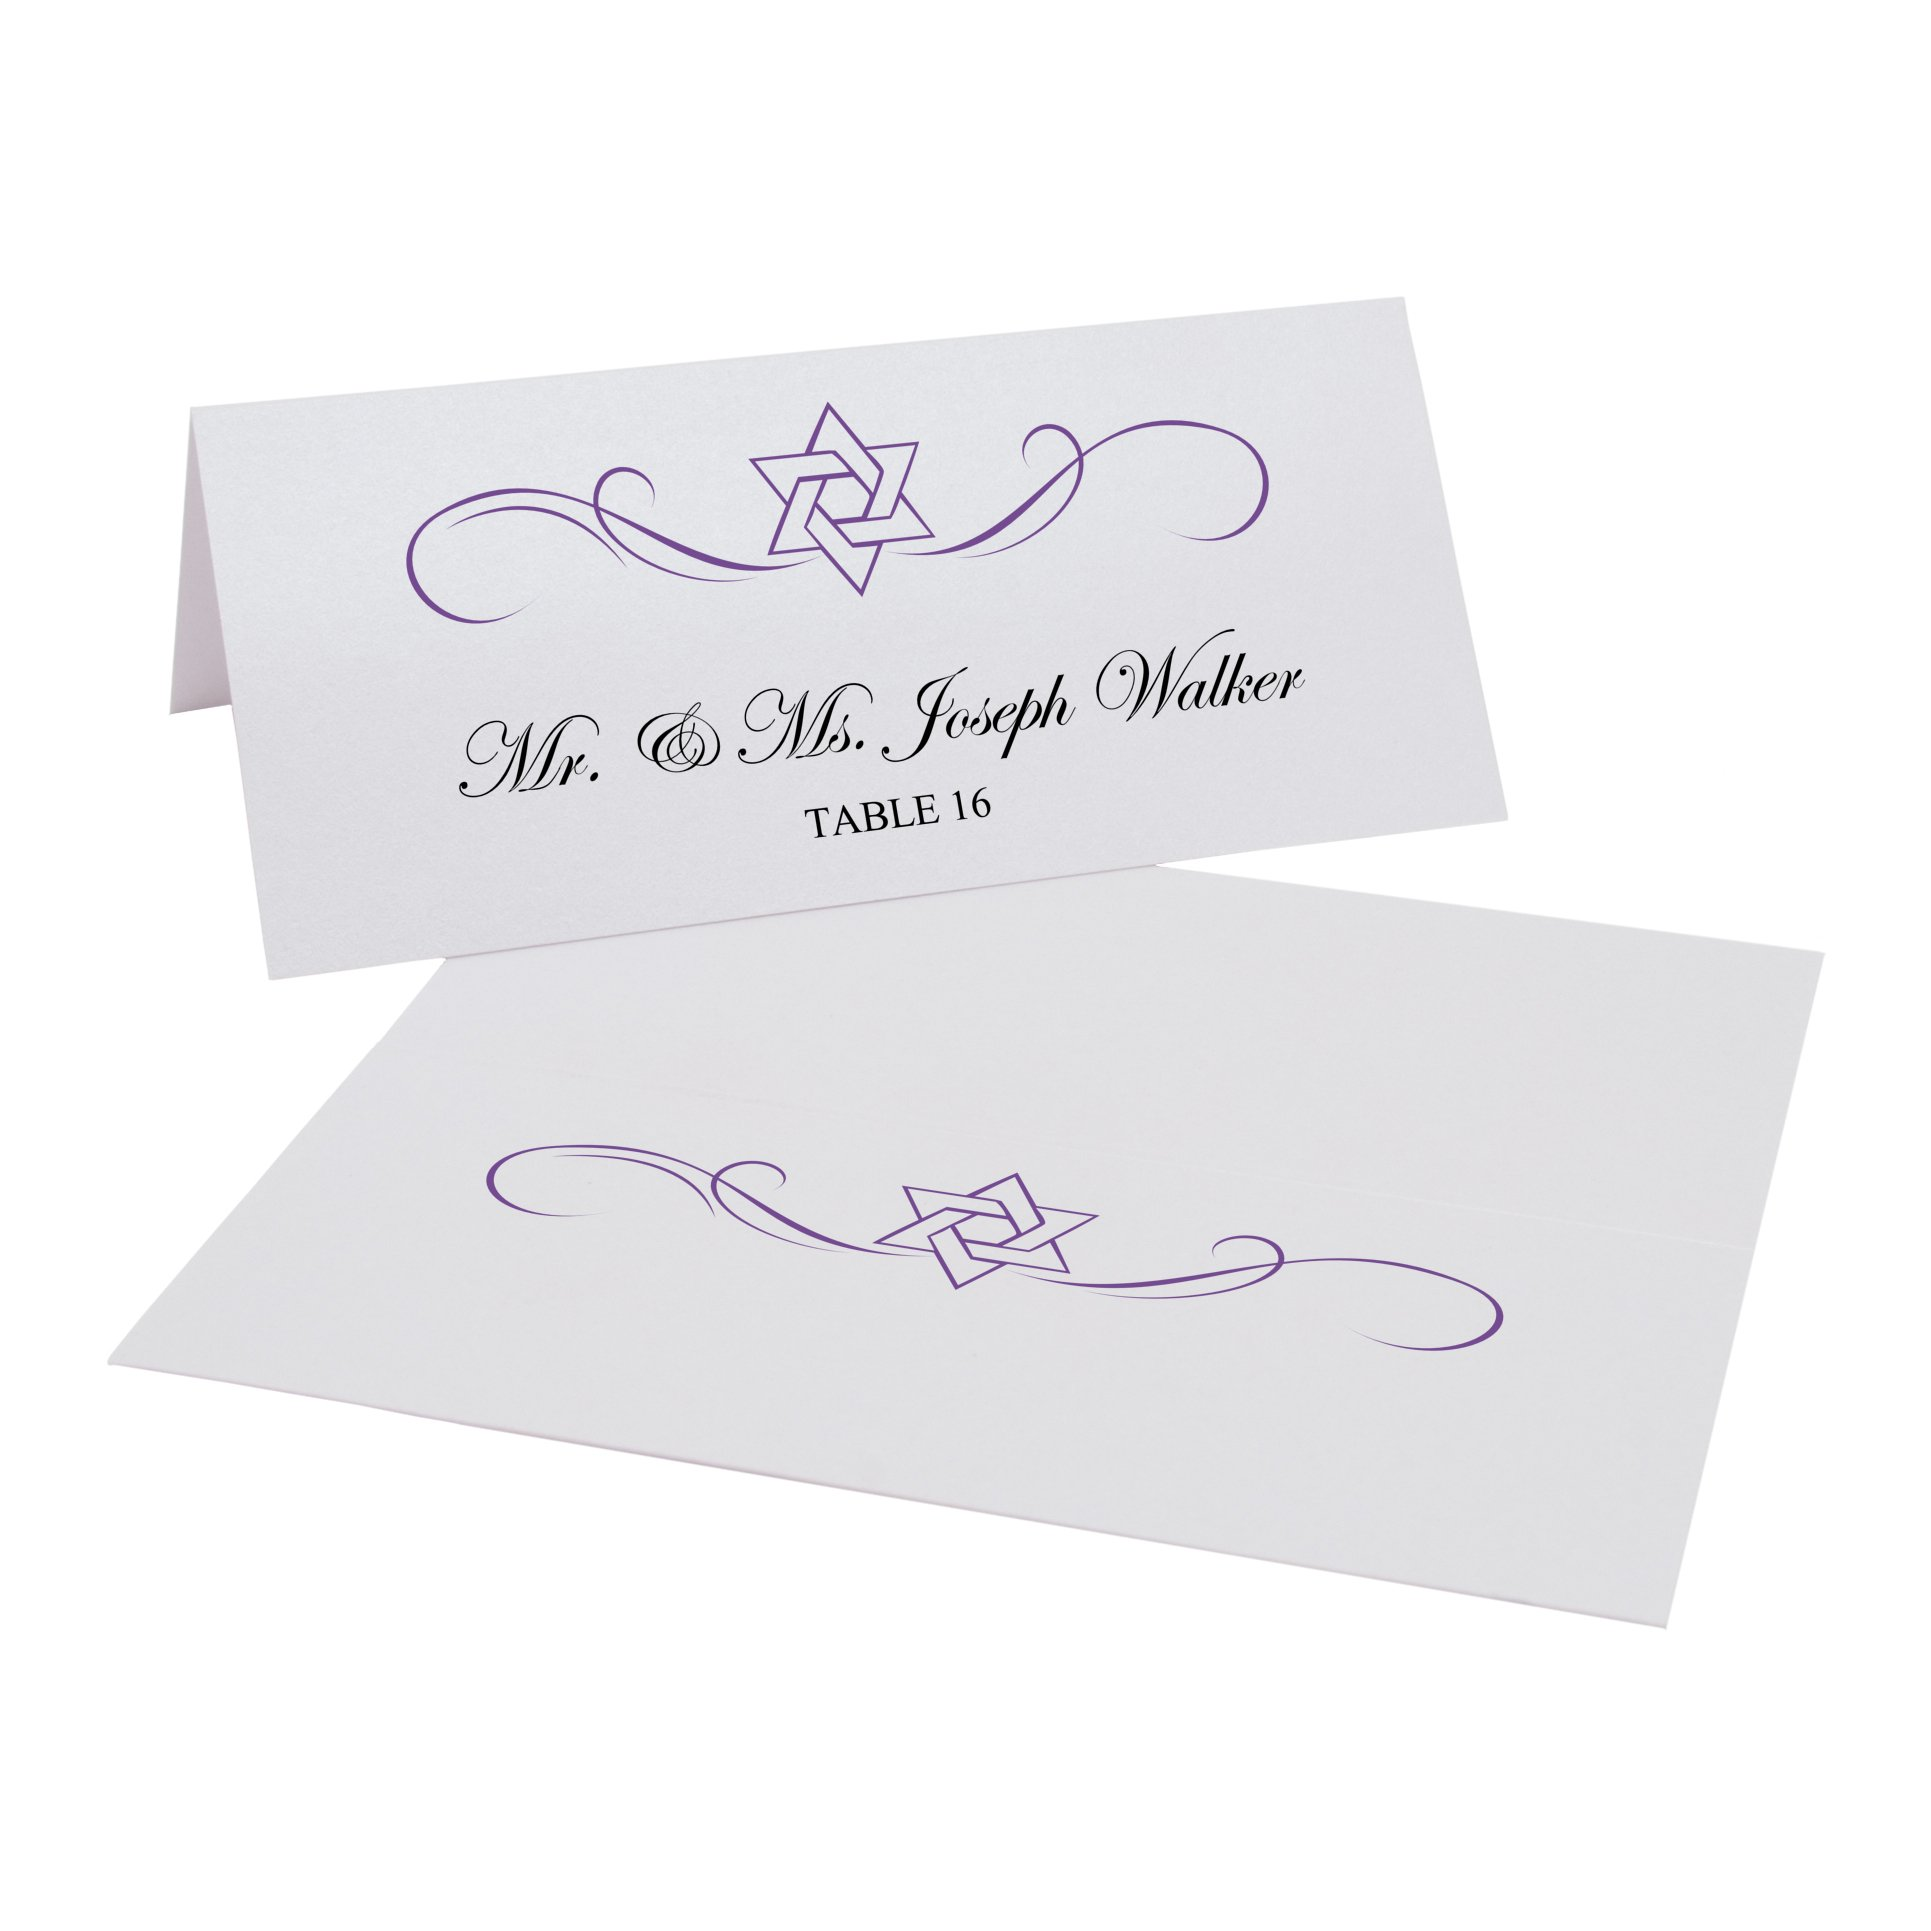 Intertwined Star of David Flourish Jewish Easy Print Place Cards, Pearl White, Purple, Set of 450 (113 Sheets) by Documents and Designs